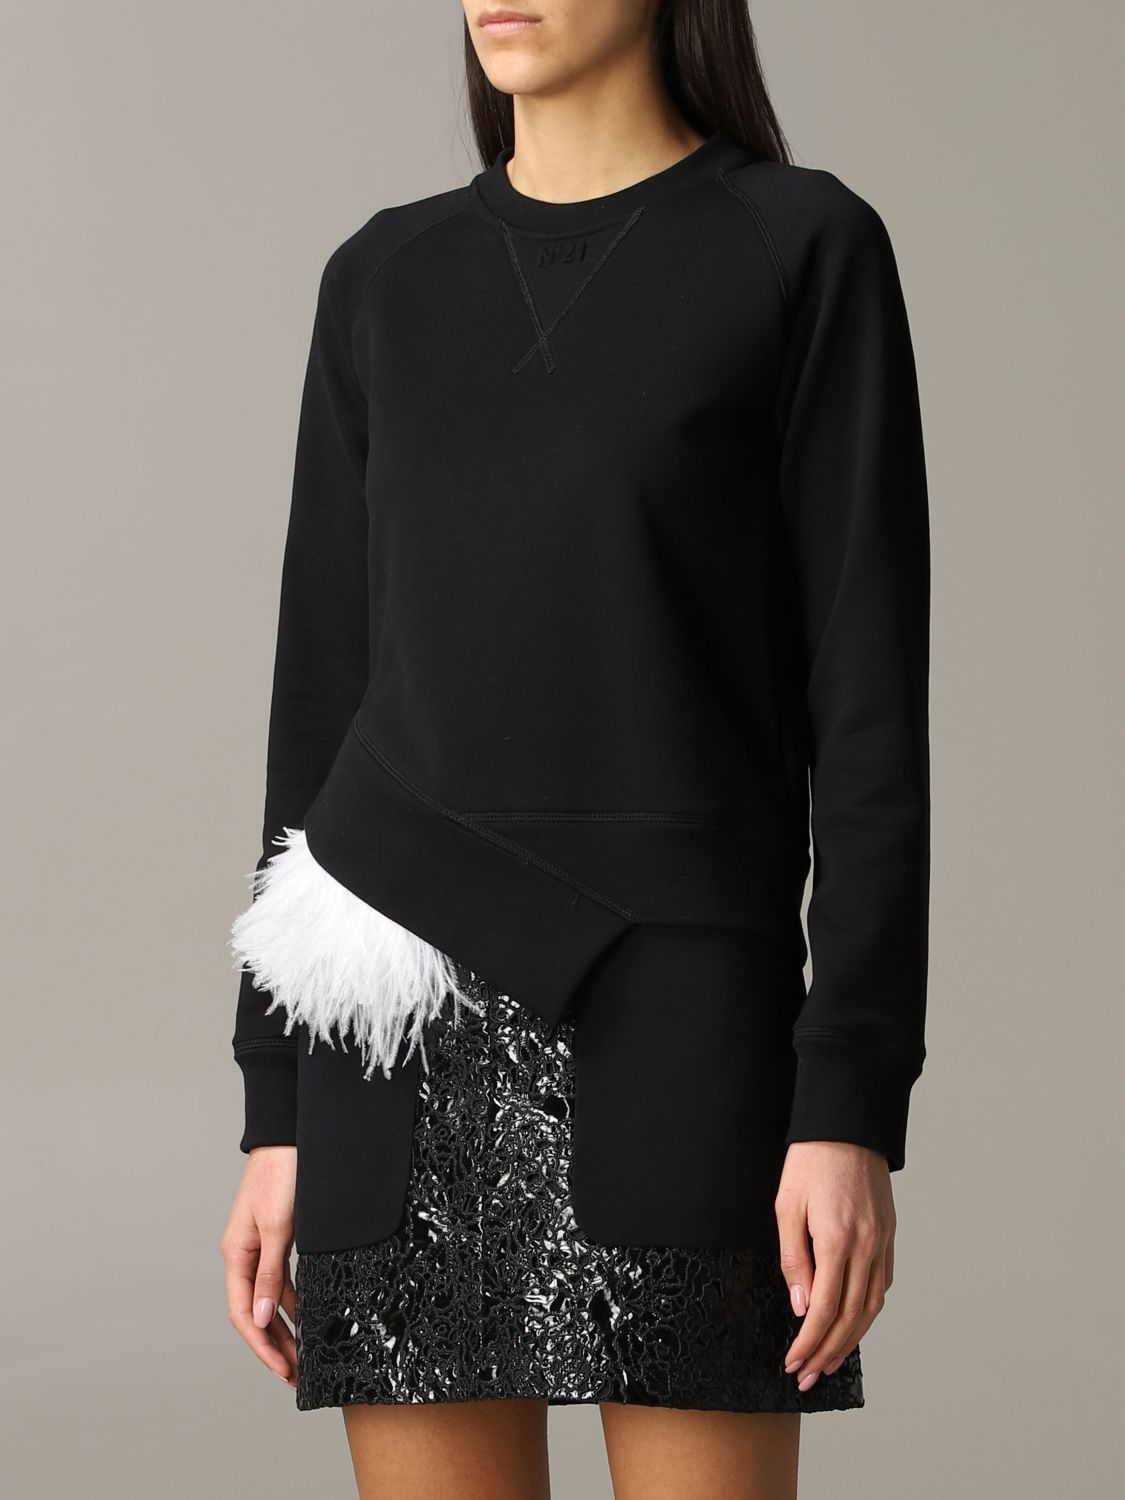 N ° 21 sweatshirt with feather inserts black 4